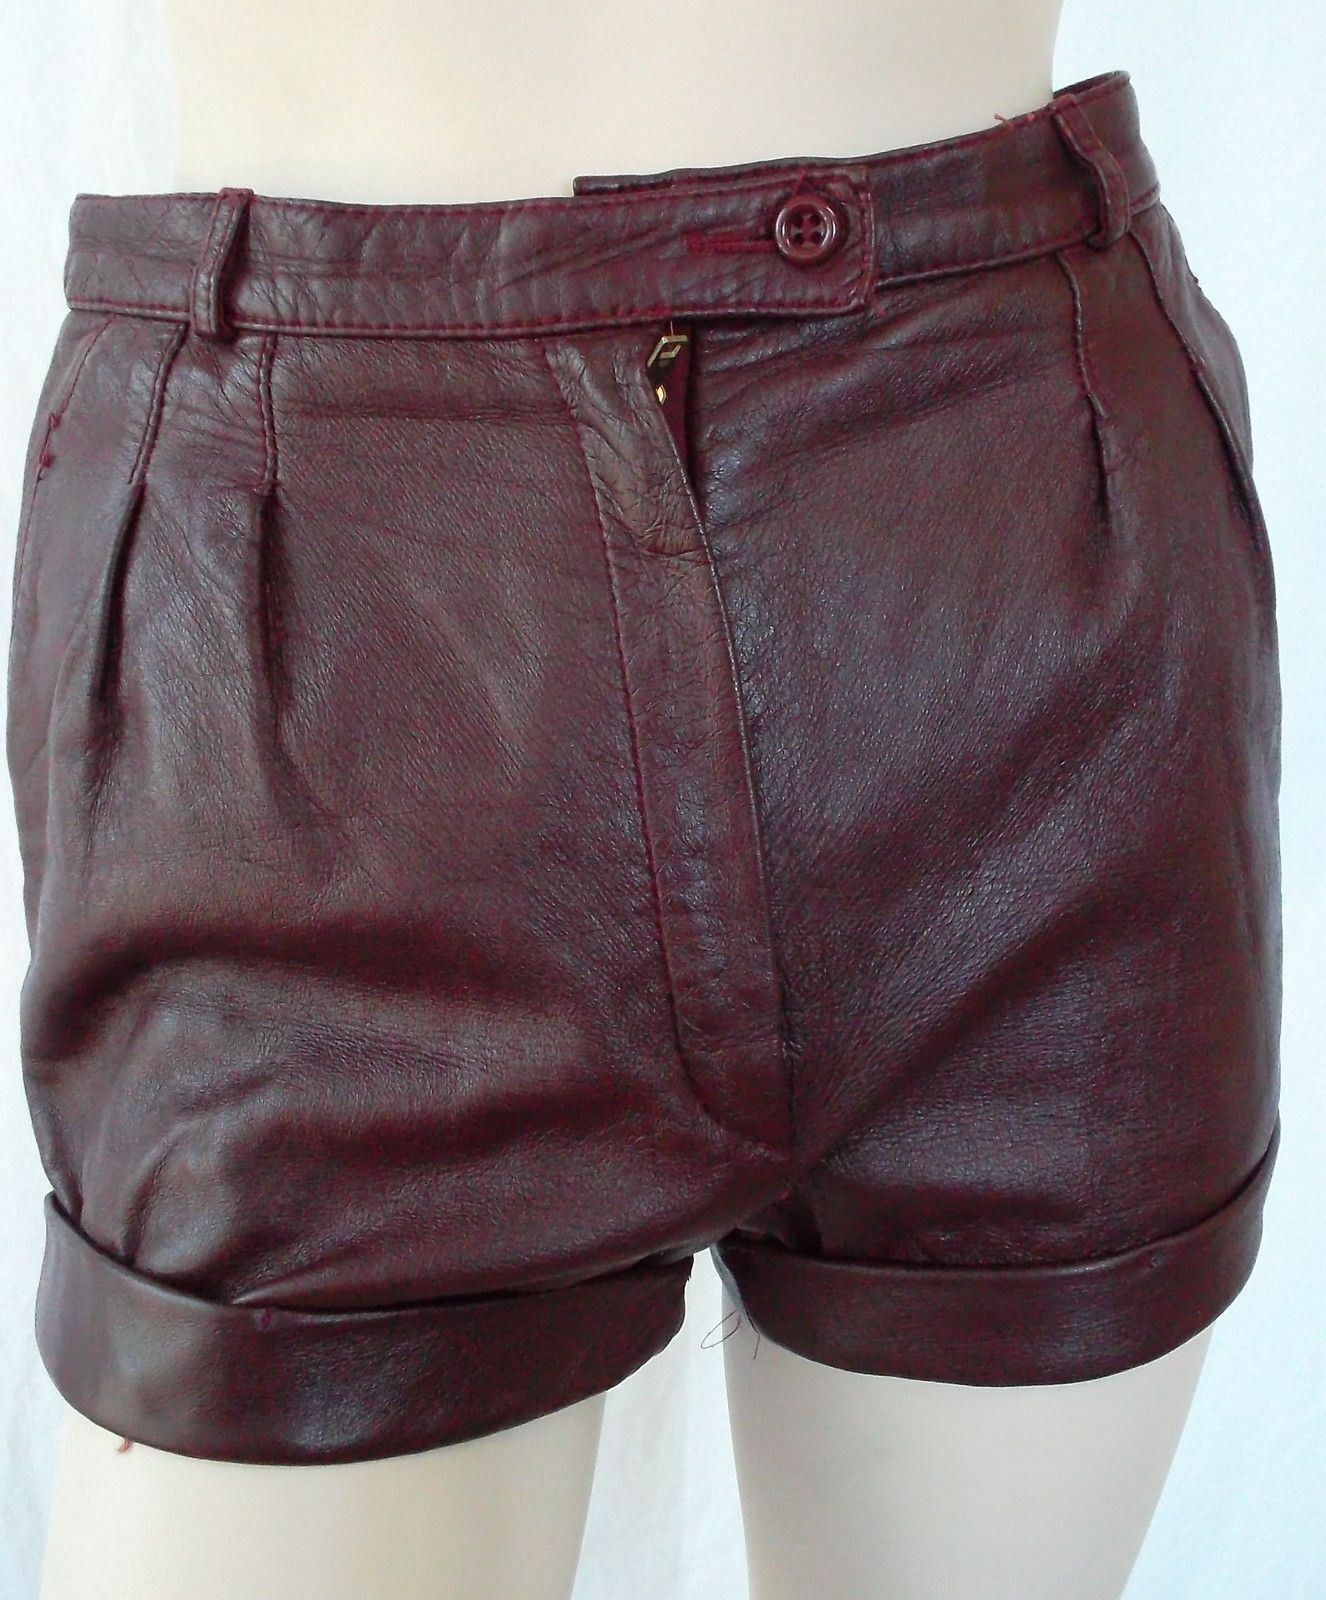 Women's Genuine Lambskin Leather Shorts Ladies Gym Sports Hot Sexy Pants LS78